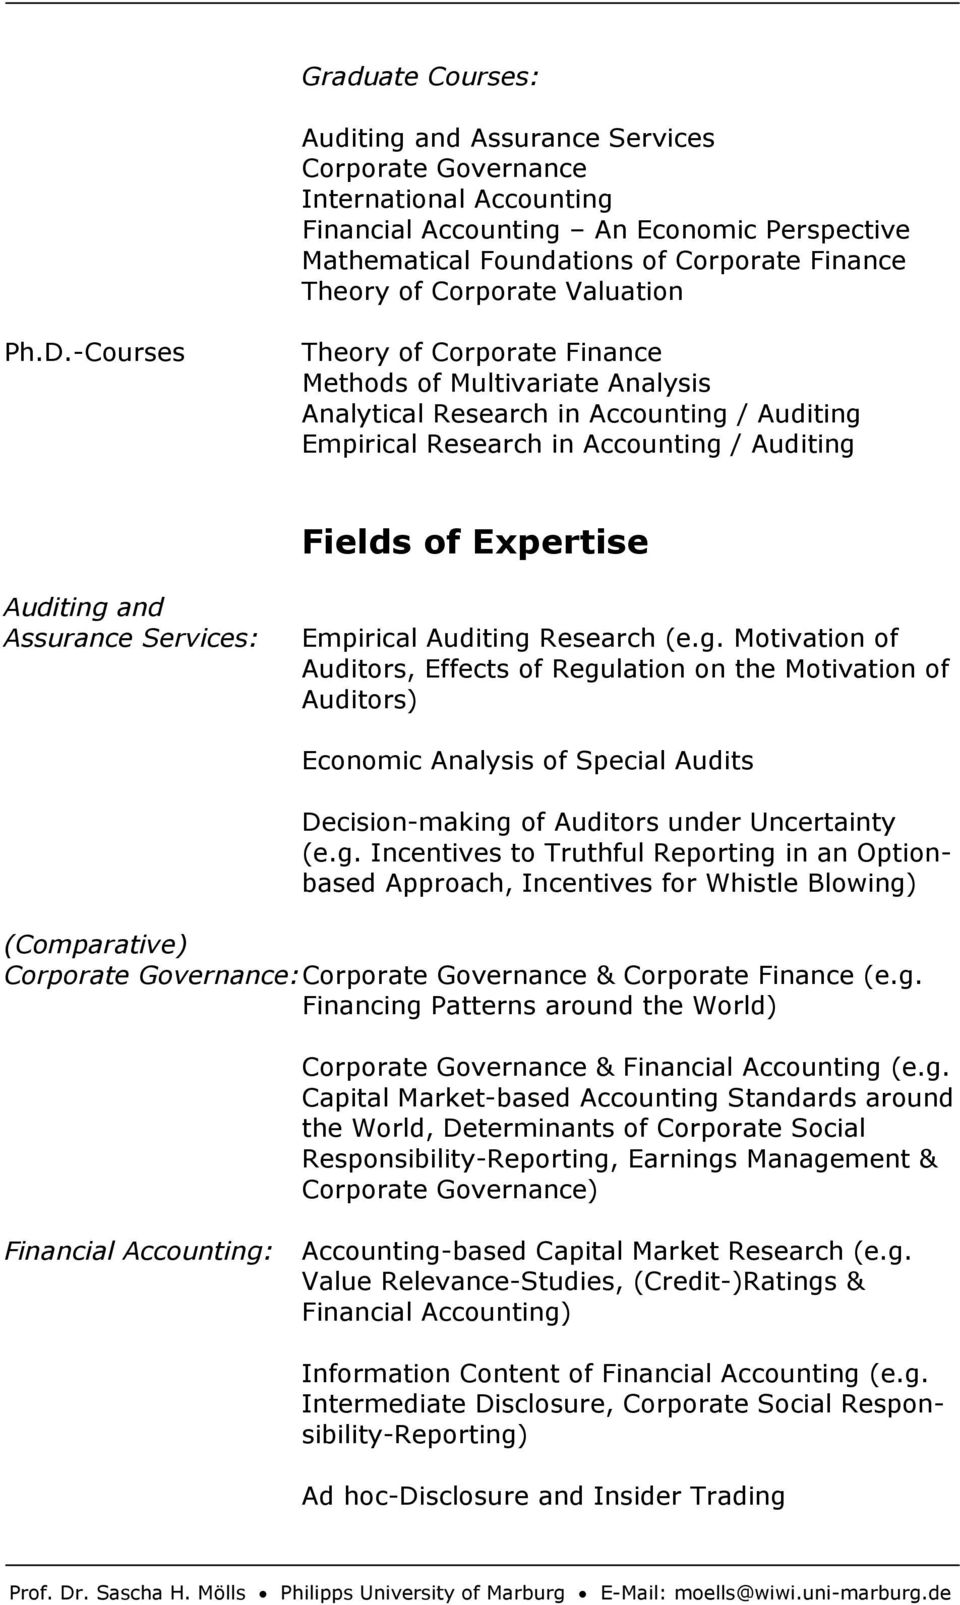 -Courses Theory of Corporate Finance Methods of Multivariate Analysis Analytical Research in Accounting / Auditing Empirical Research in Accounting / Auditing Fields of Expertise Auditing and